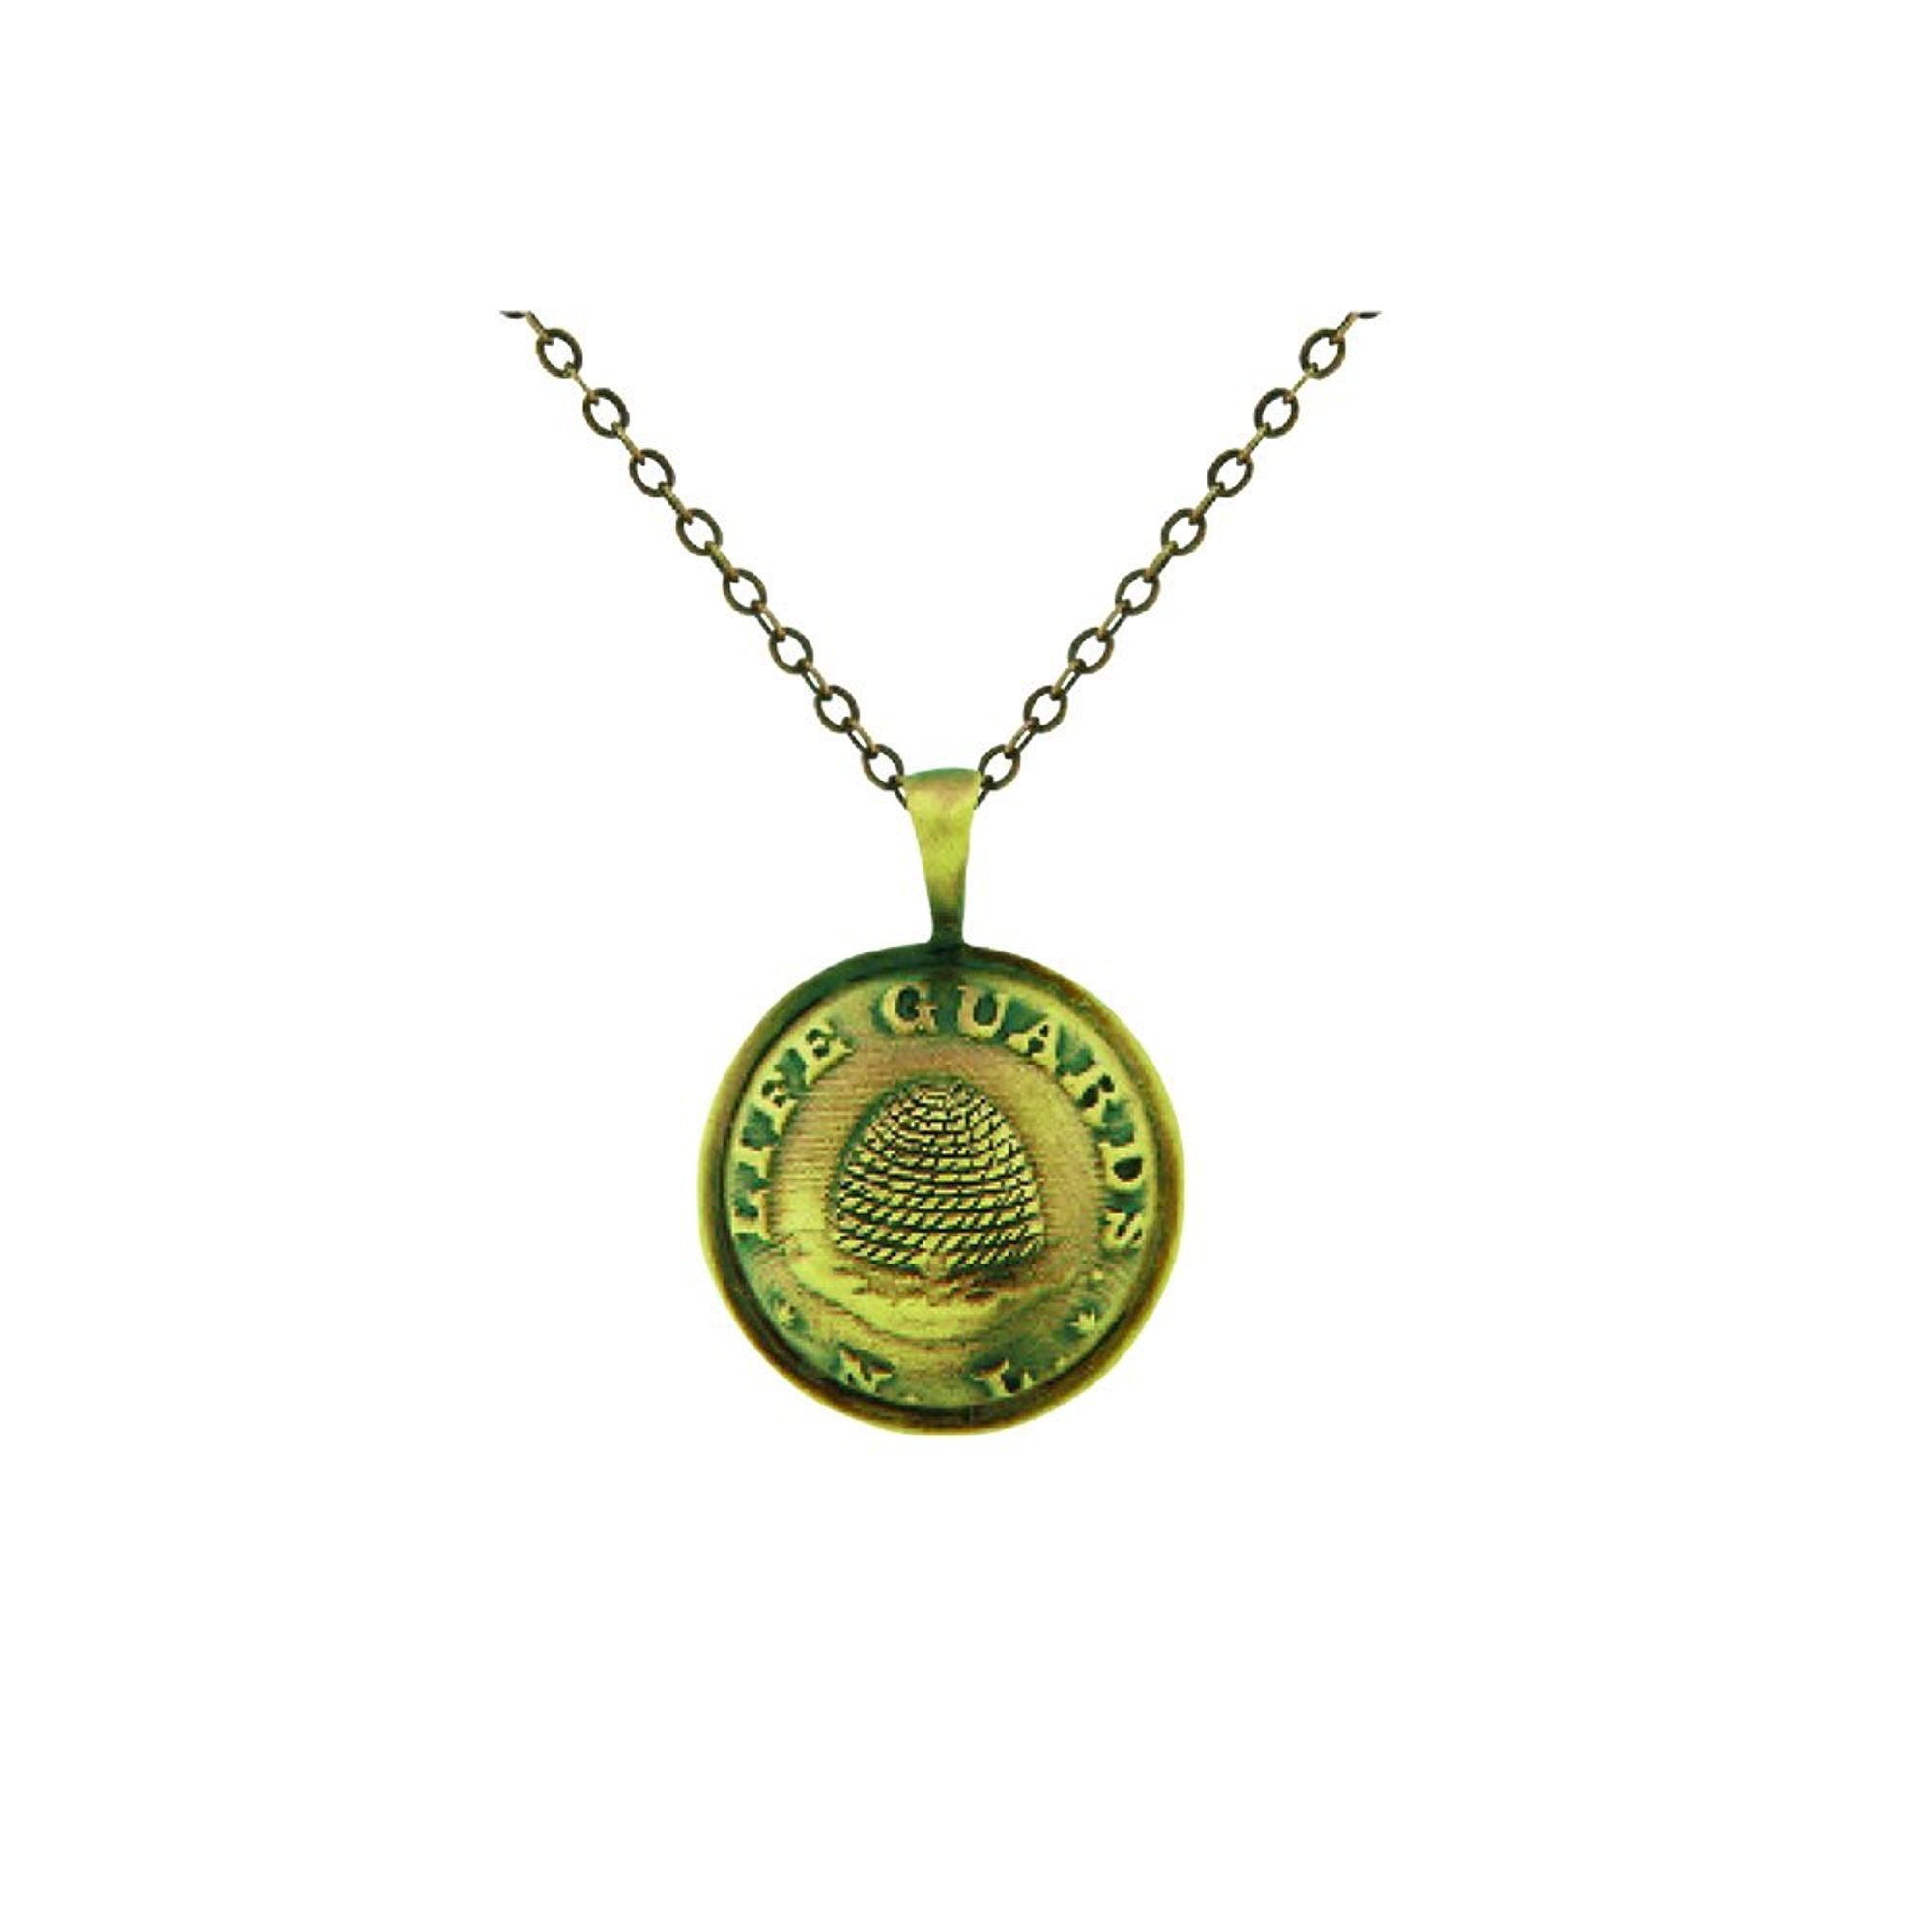 J22 - J23 Nauvoo Legion Necklaces